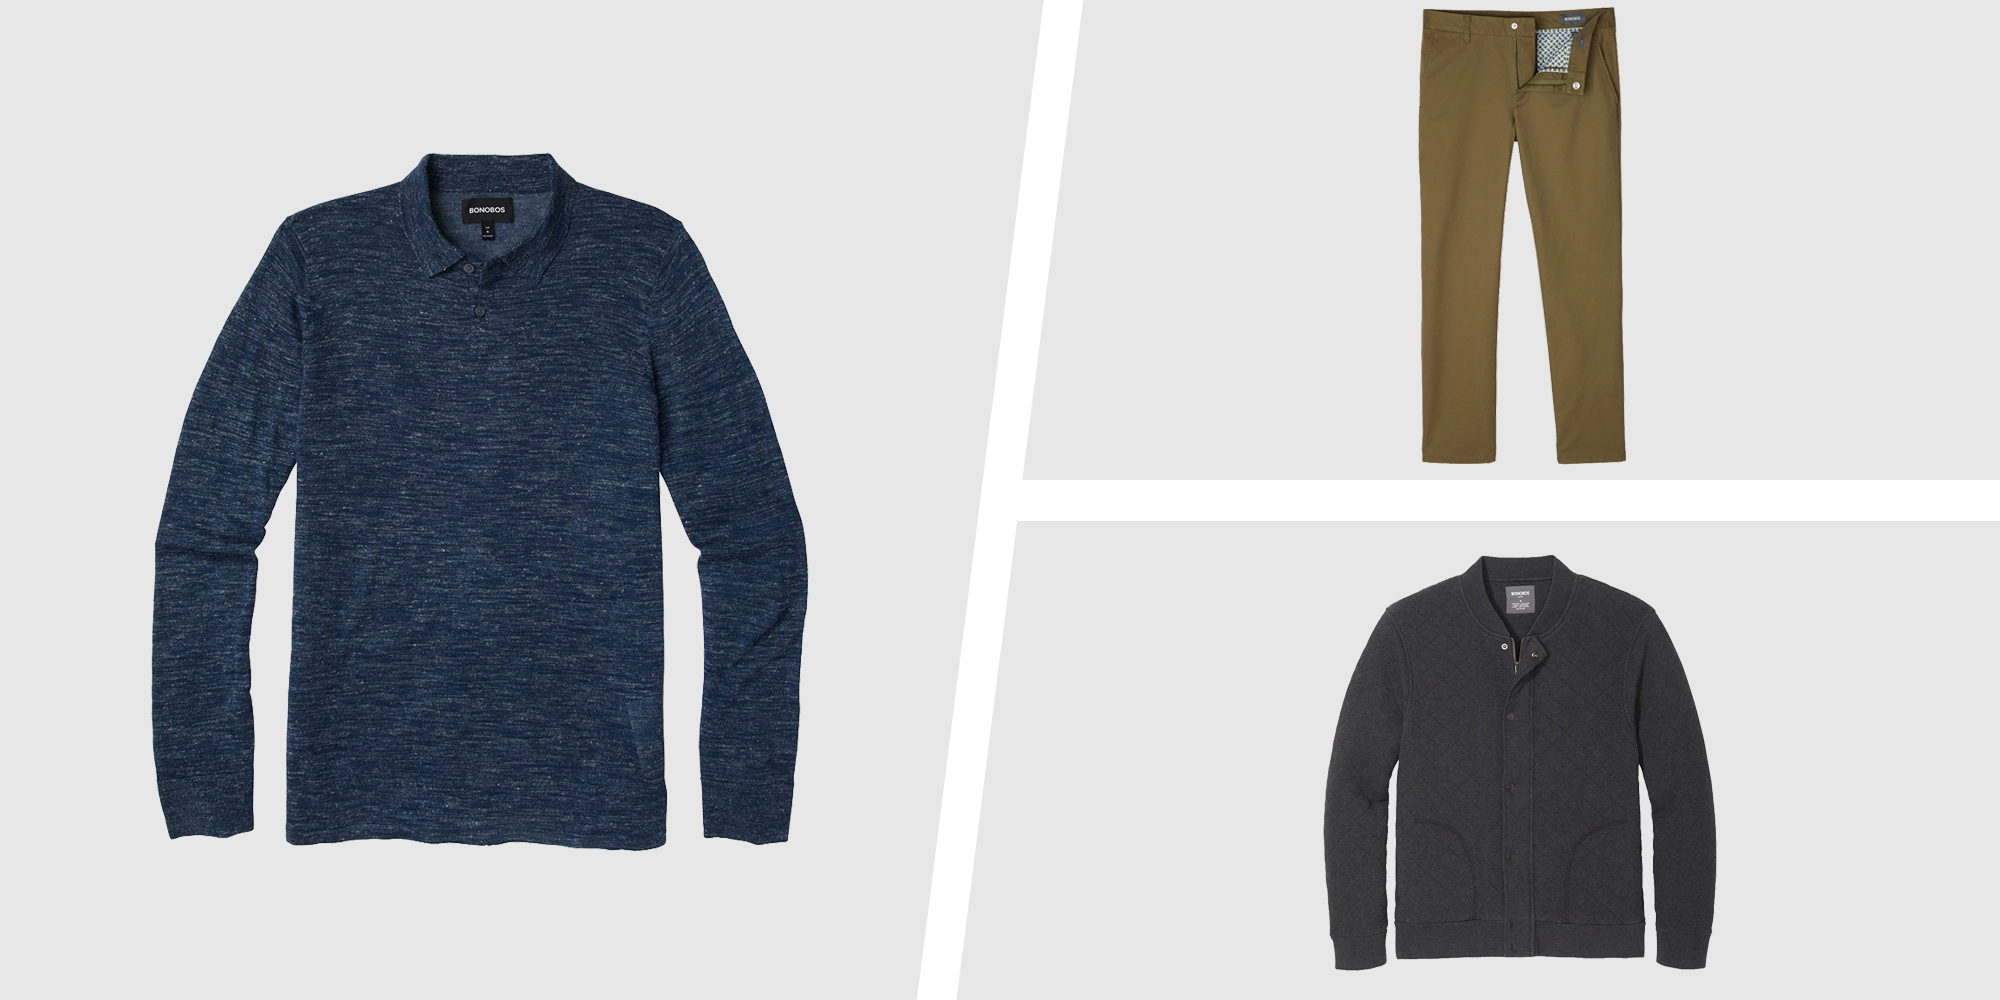 The 10 Best Fall Clothing Deals From Bonobos' Massive Final Sale